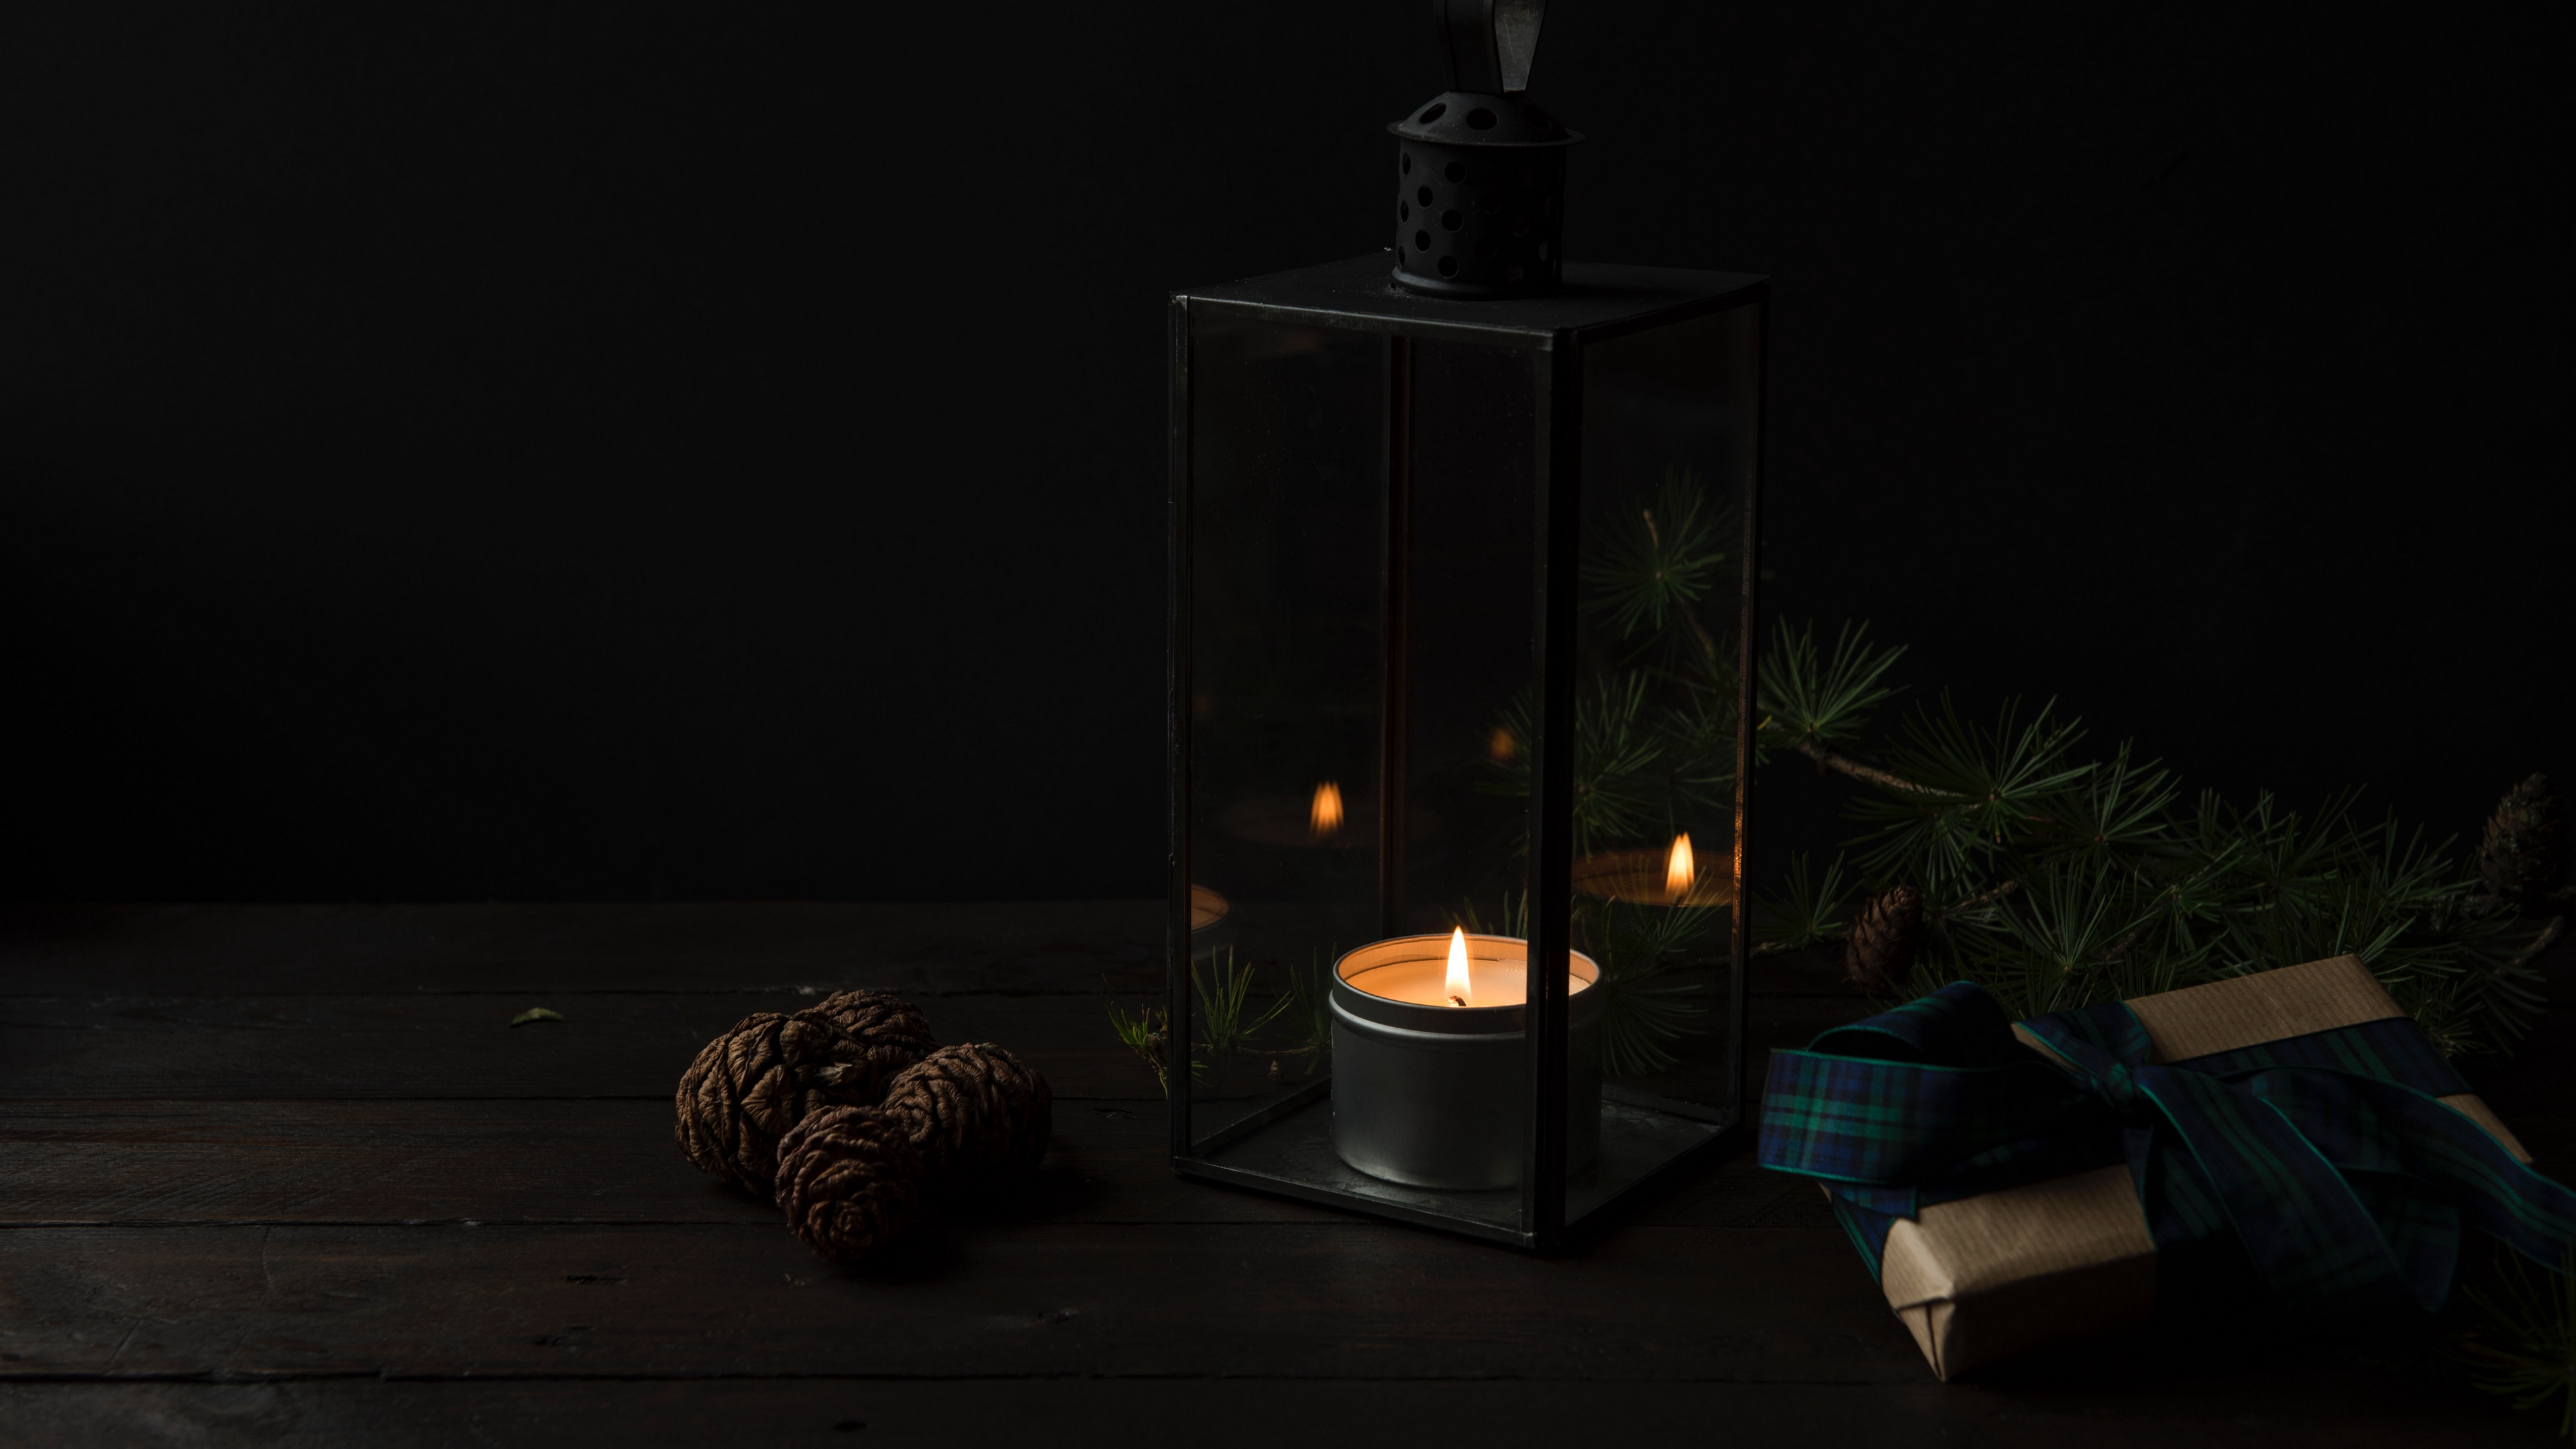 candlestick candle gifts dark 4k 1540575761 - candlestick, candle, gifts, dark 4k - gifts, candlestick, candle